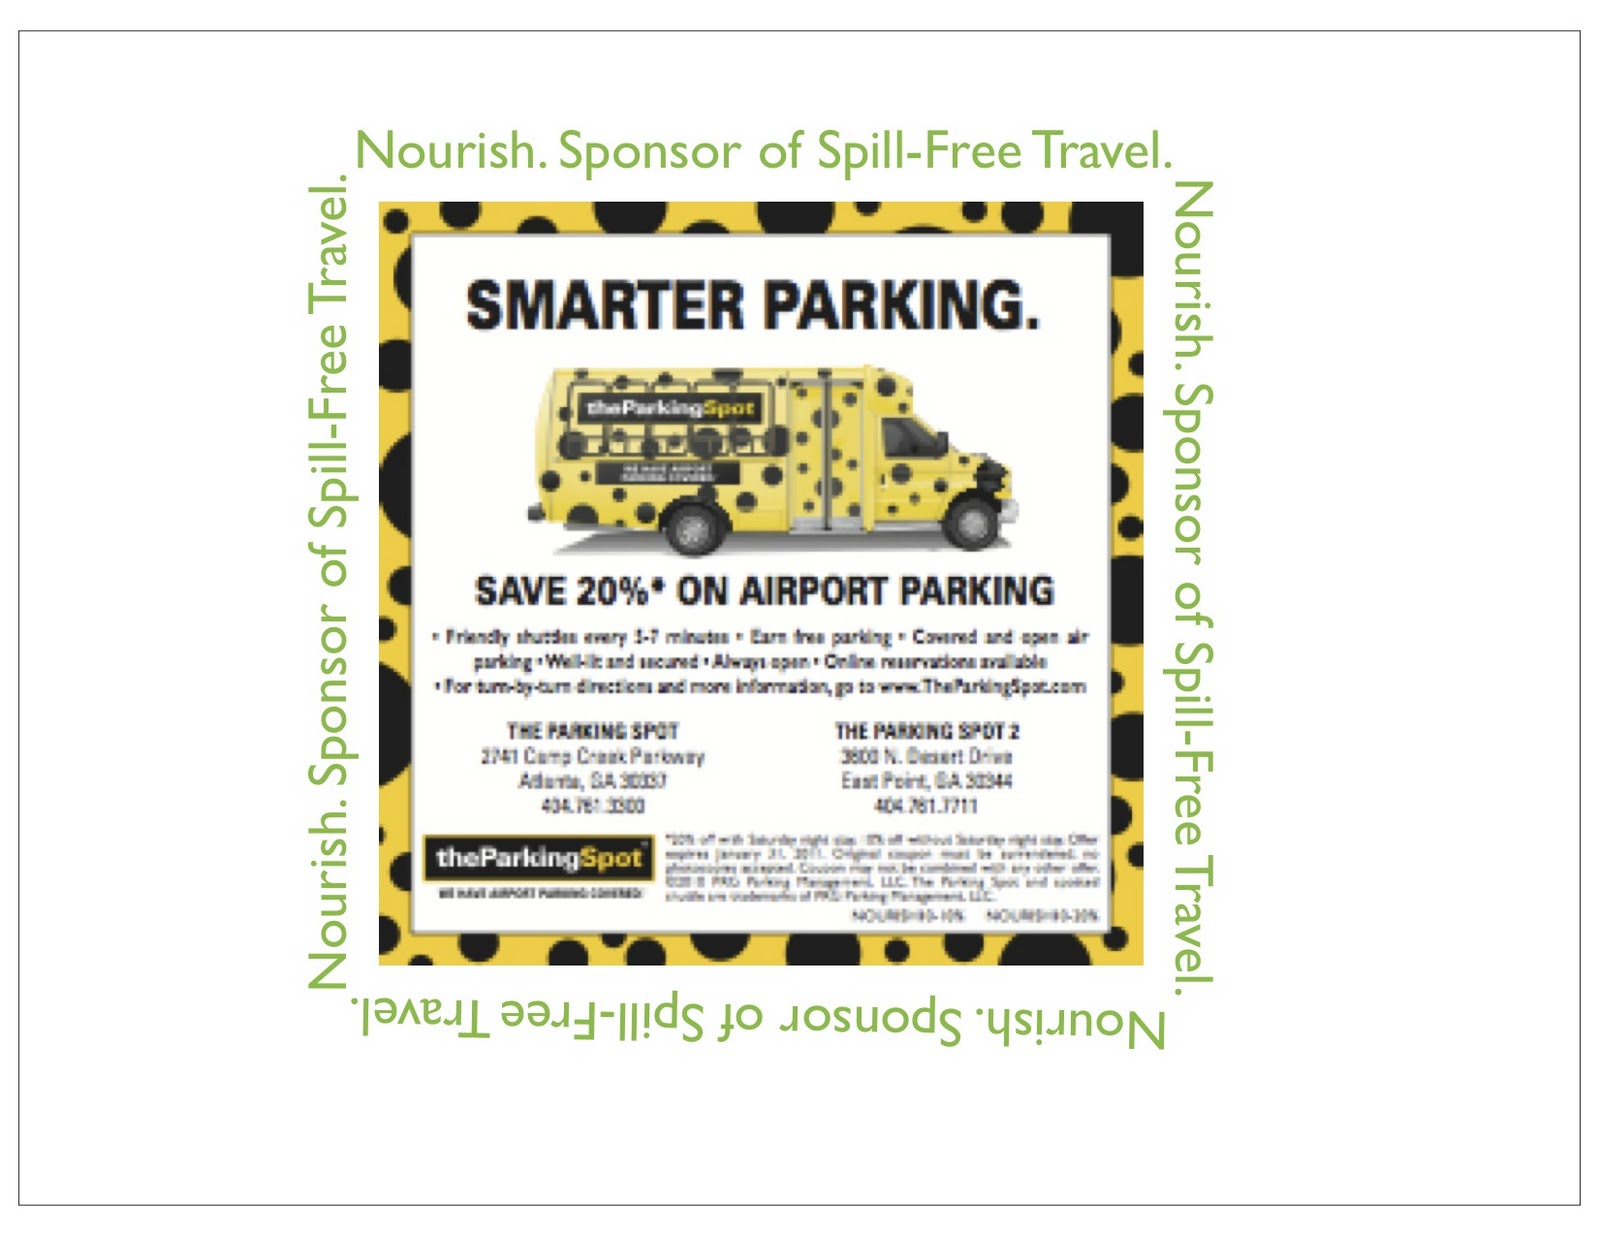 Airport parking coupon code